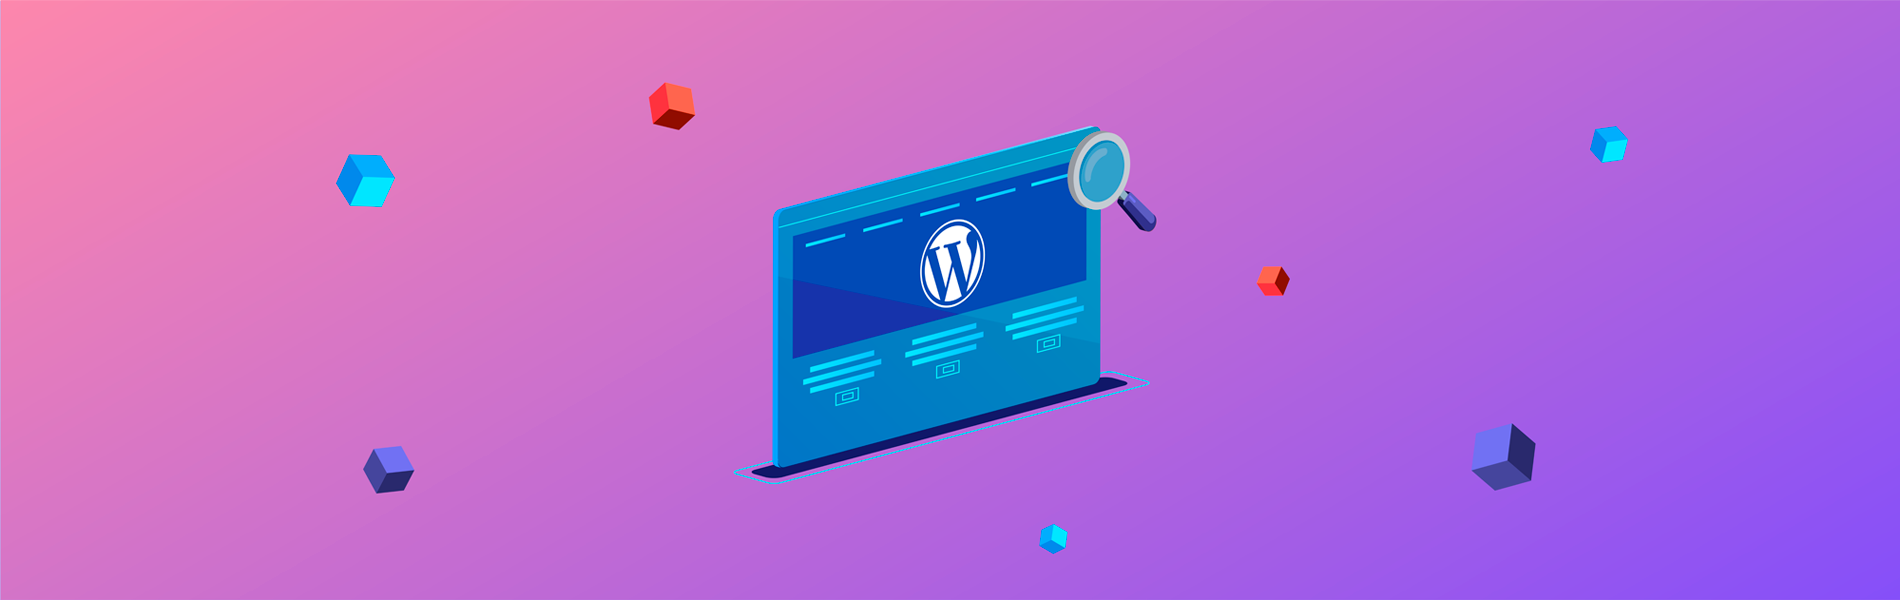 What WordPress theme is a site using